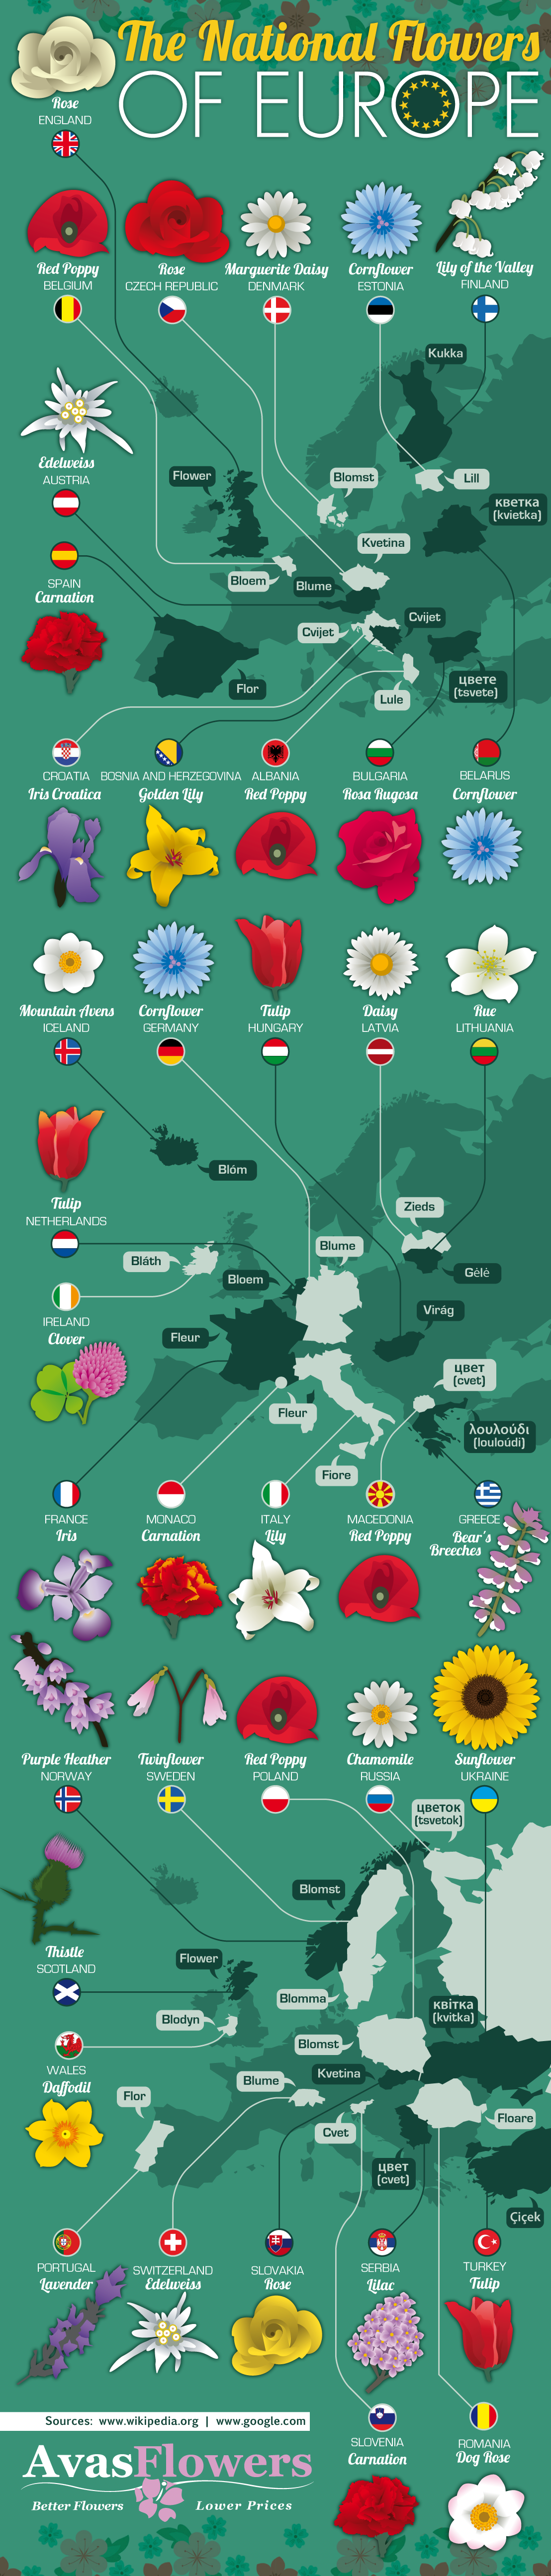 Flowers That Represent European Nations Infographic Avas Flowers Flowers Infographic